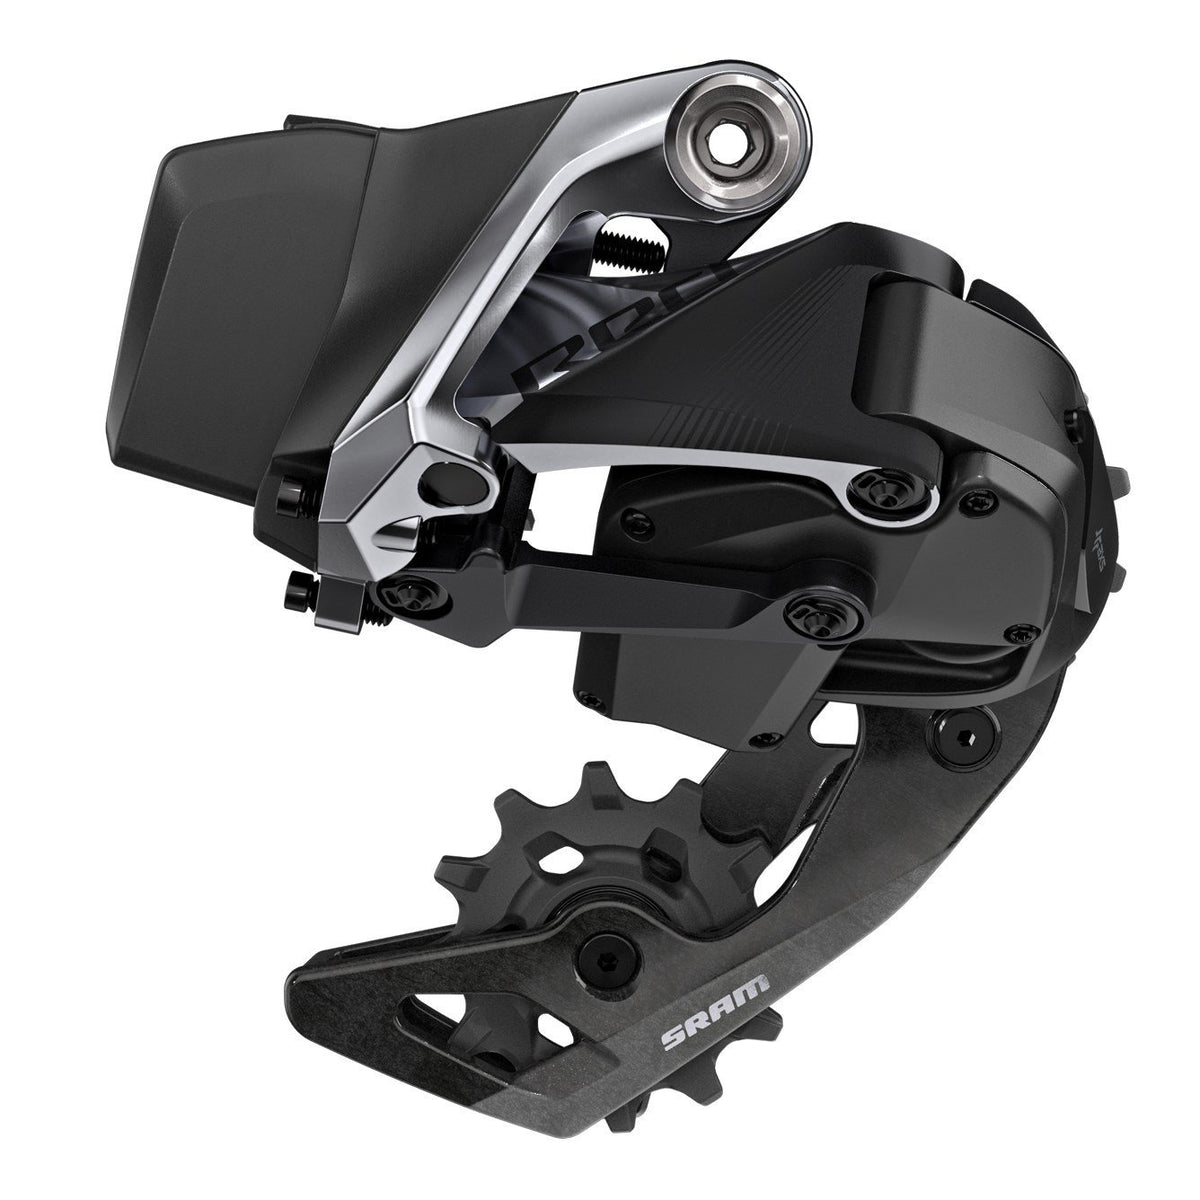 SRAM Red ETAP AXS 2x12 Kit - Cycles Galleria Melbourne